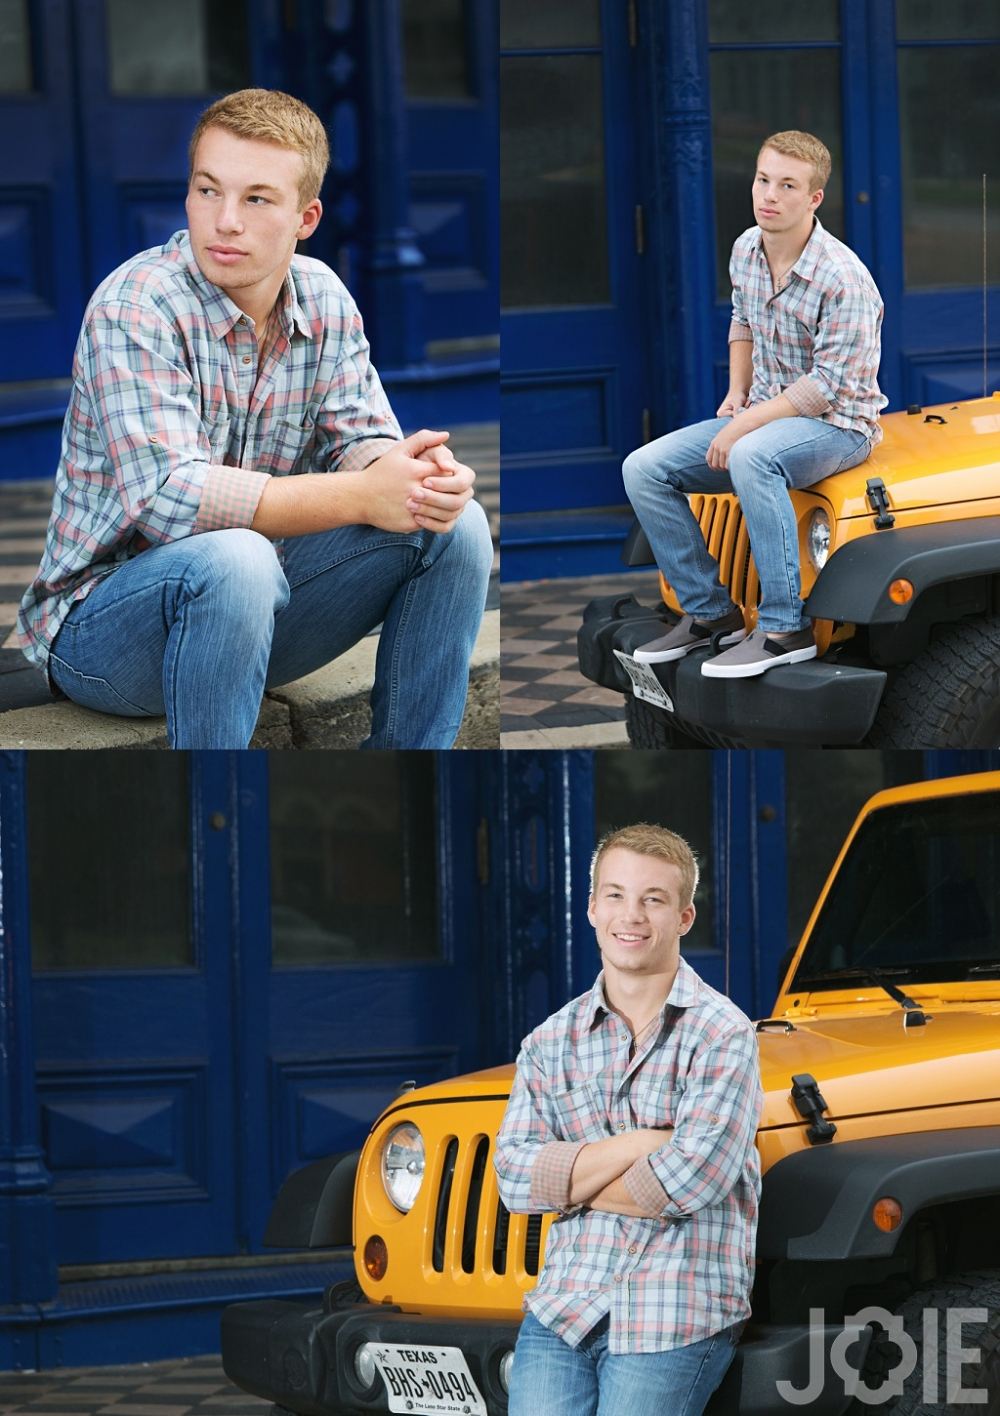 fort bend christian academy high school senior pictures jeep